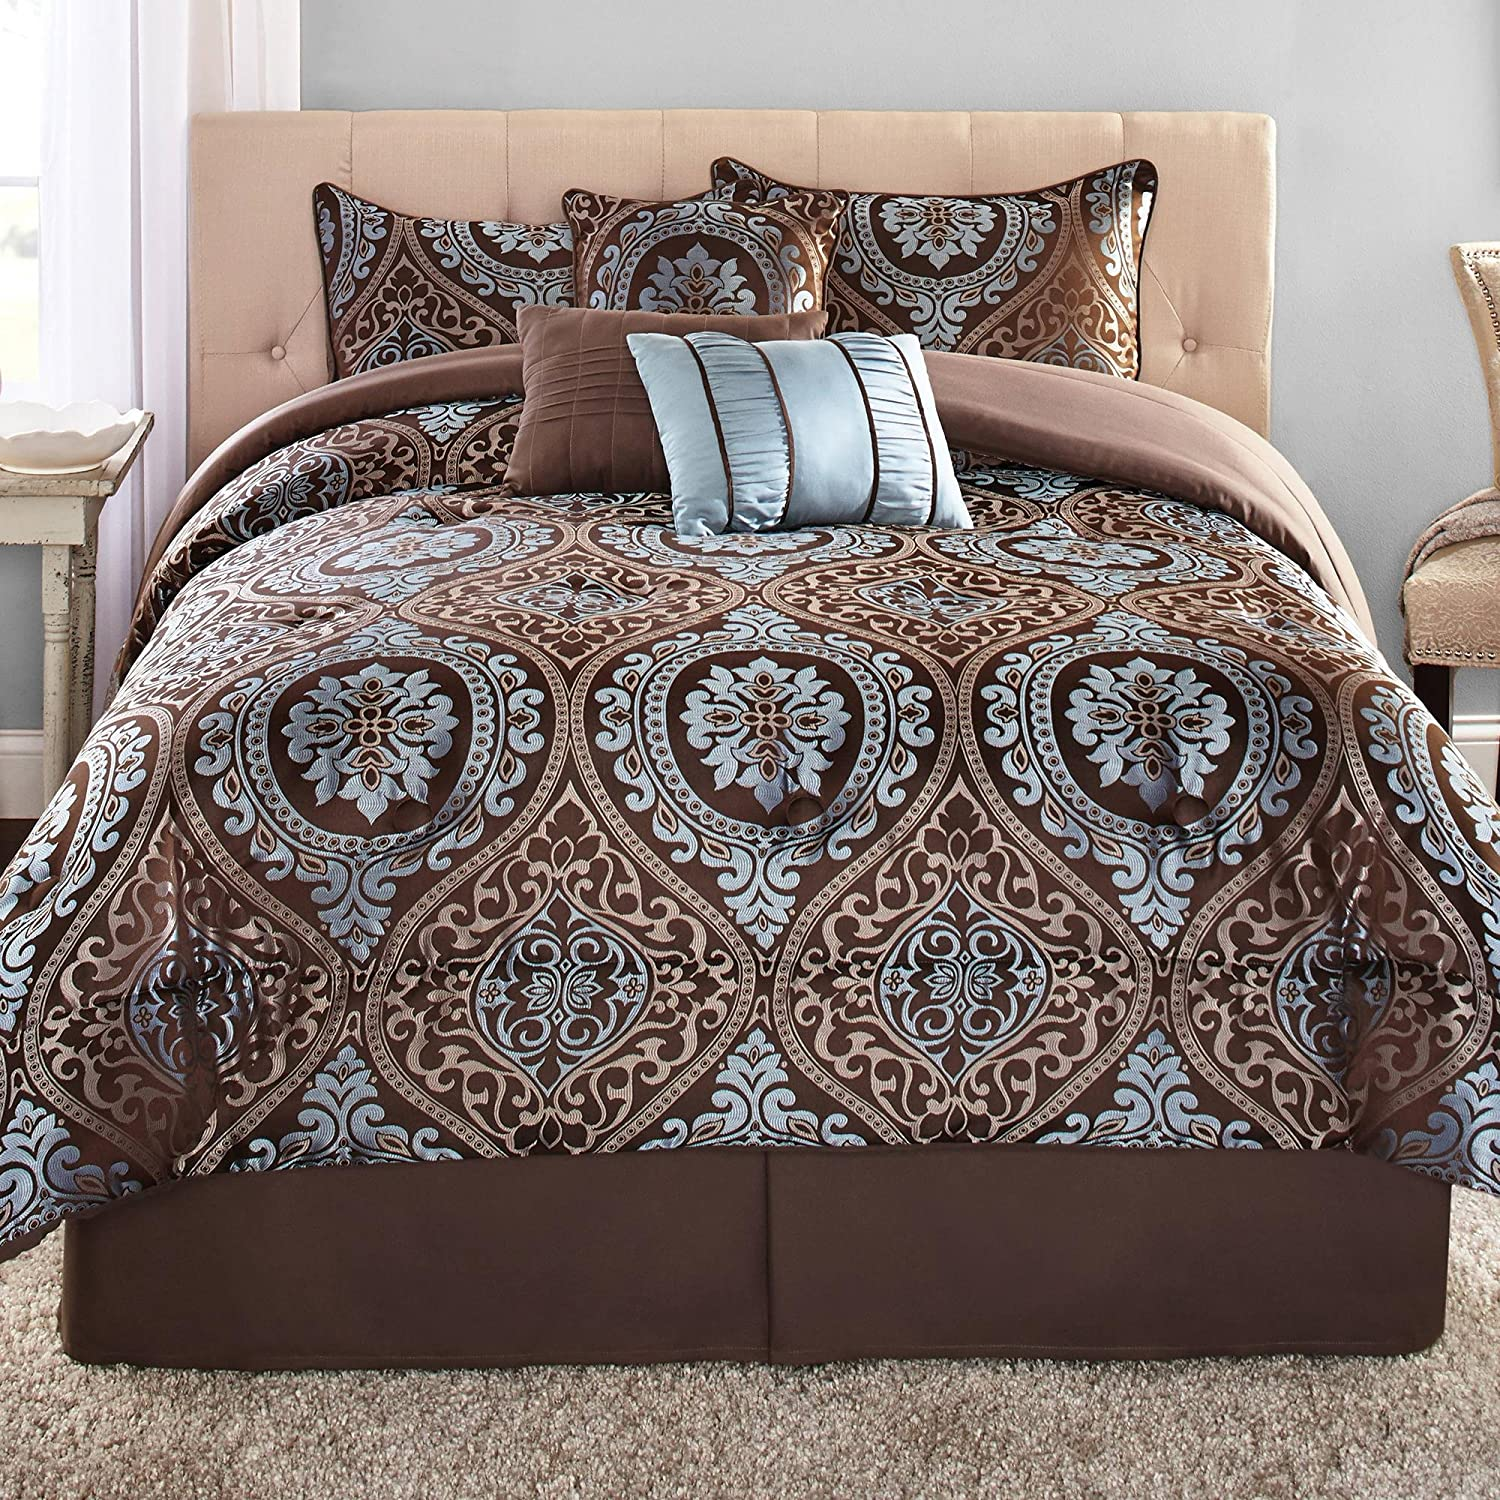 Mainstays Victoria Jacquard 7-Piece Bedding Comforter Set, King